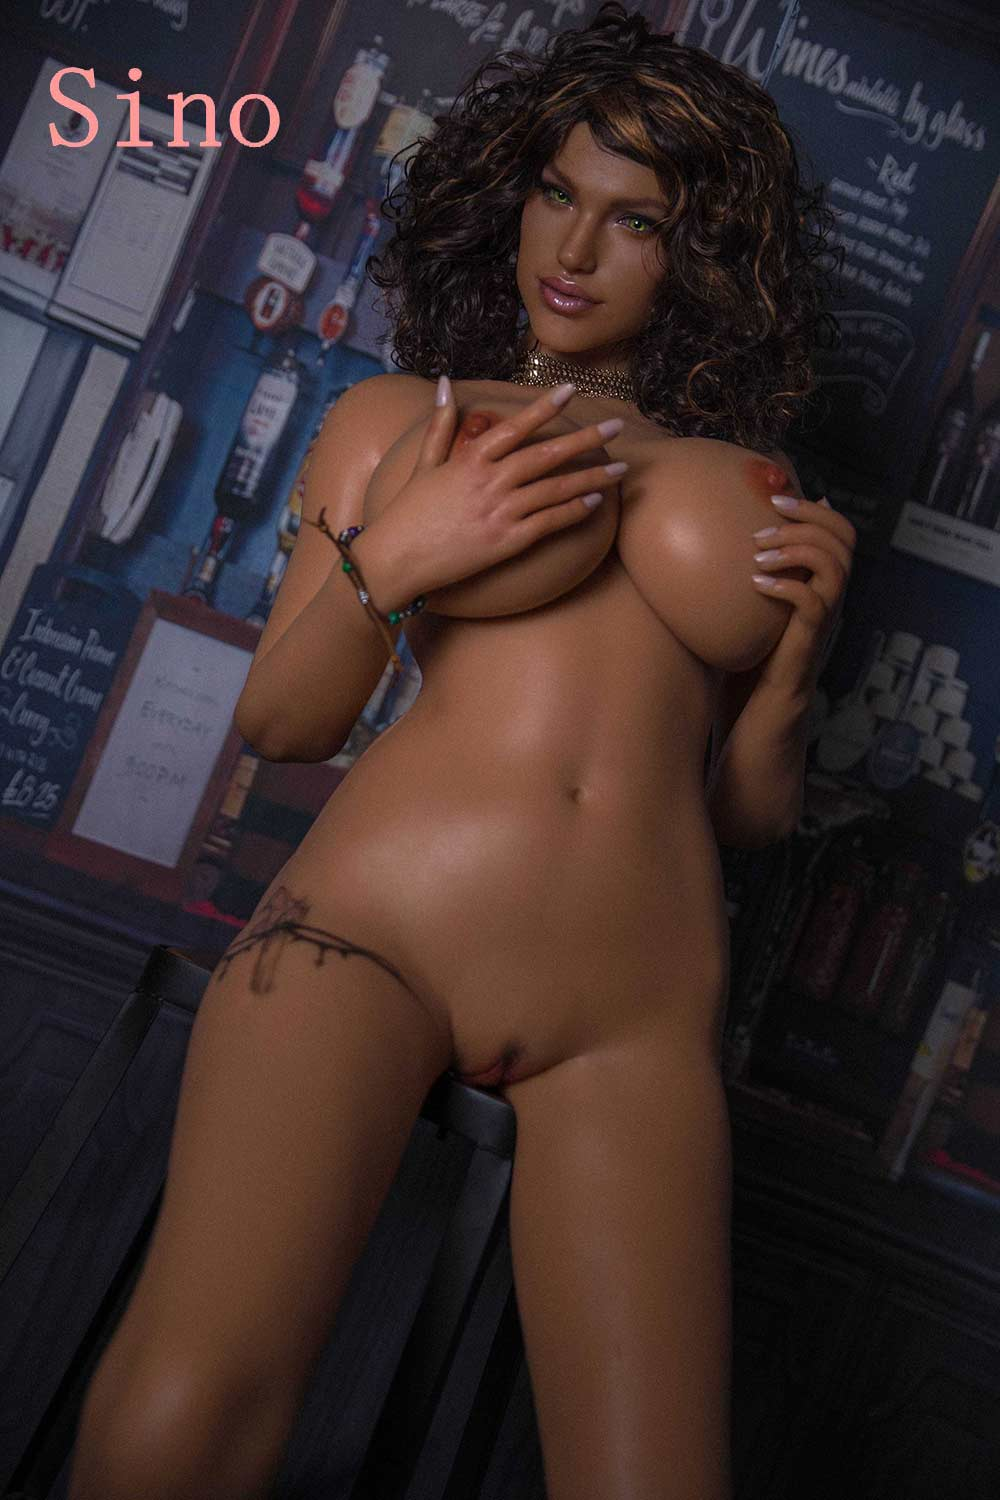 Silicone sex doll with hands touching chest